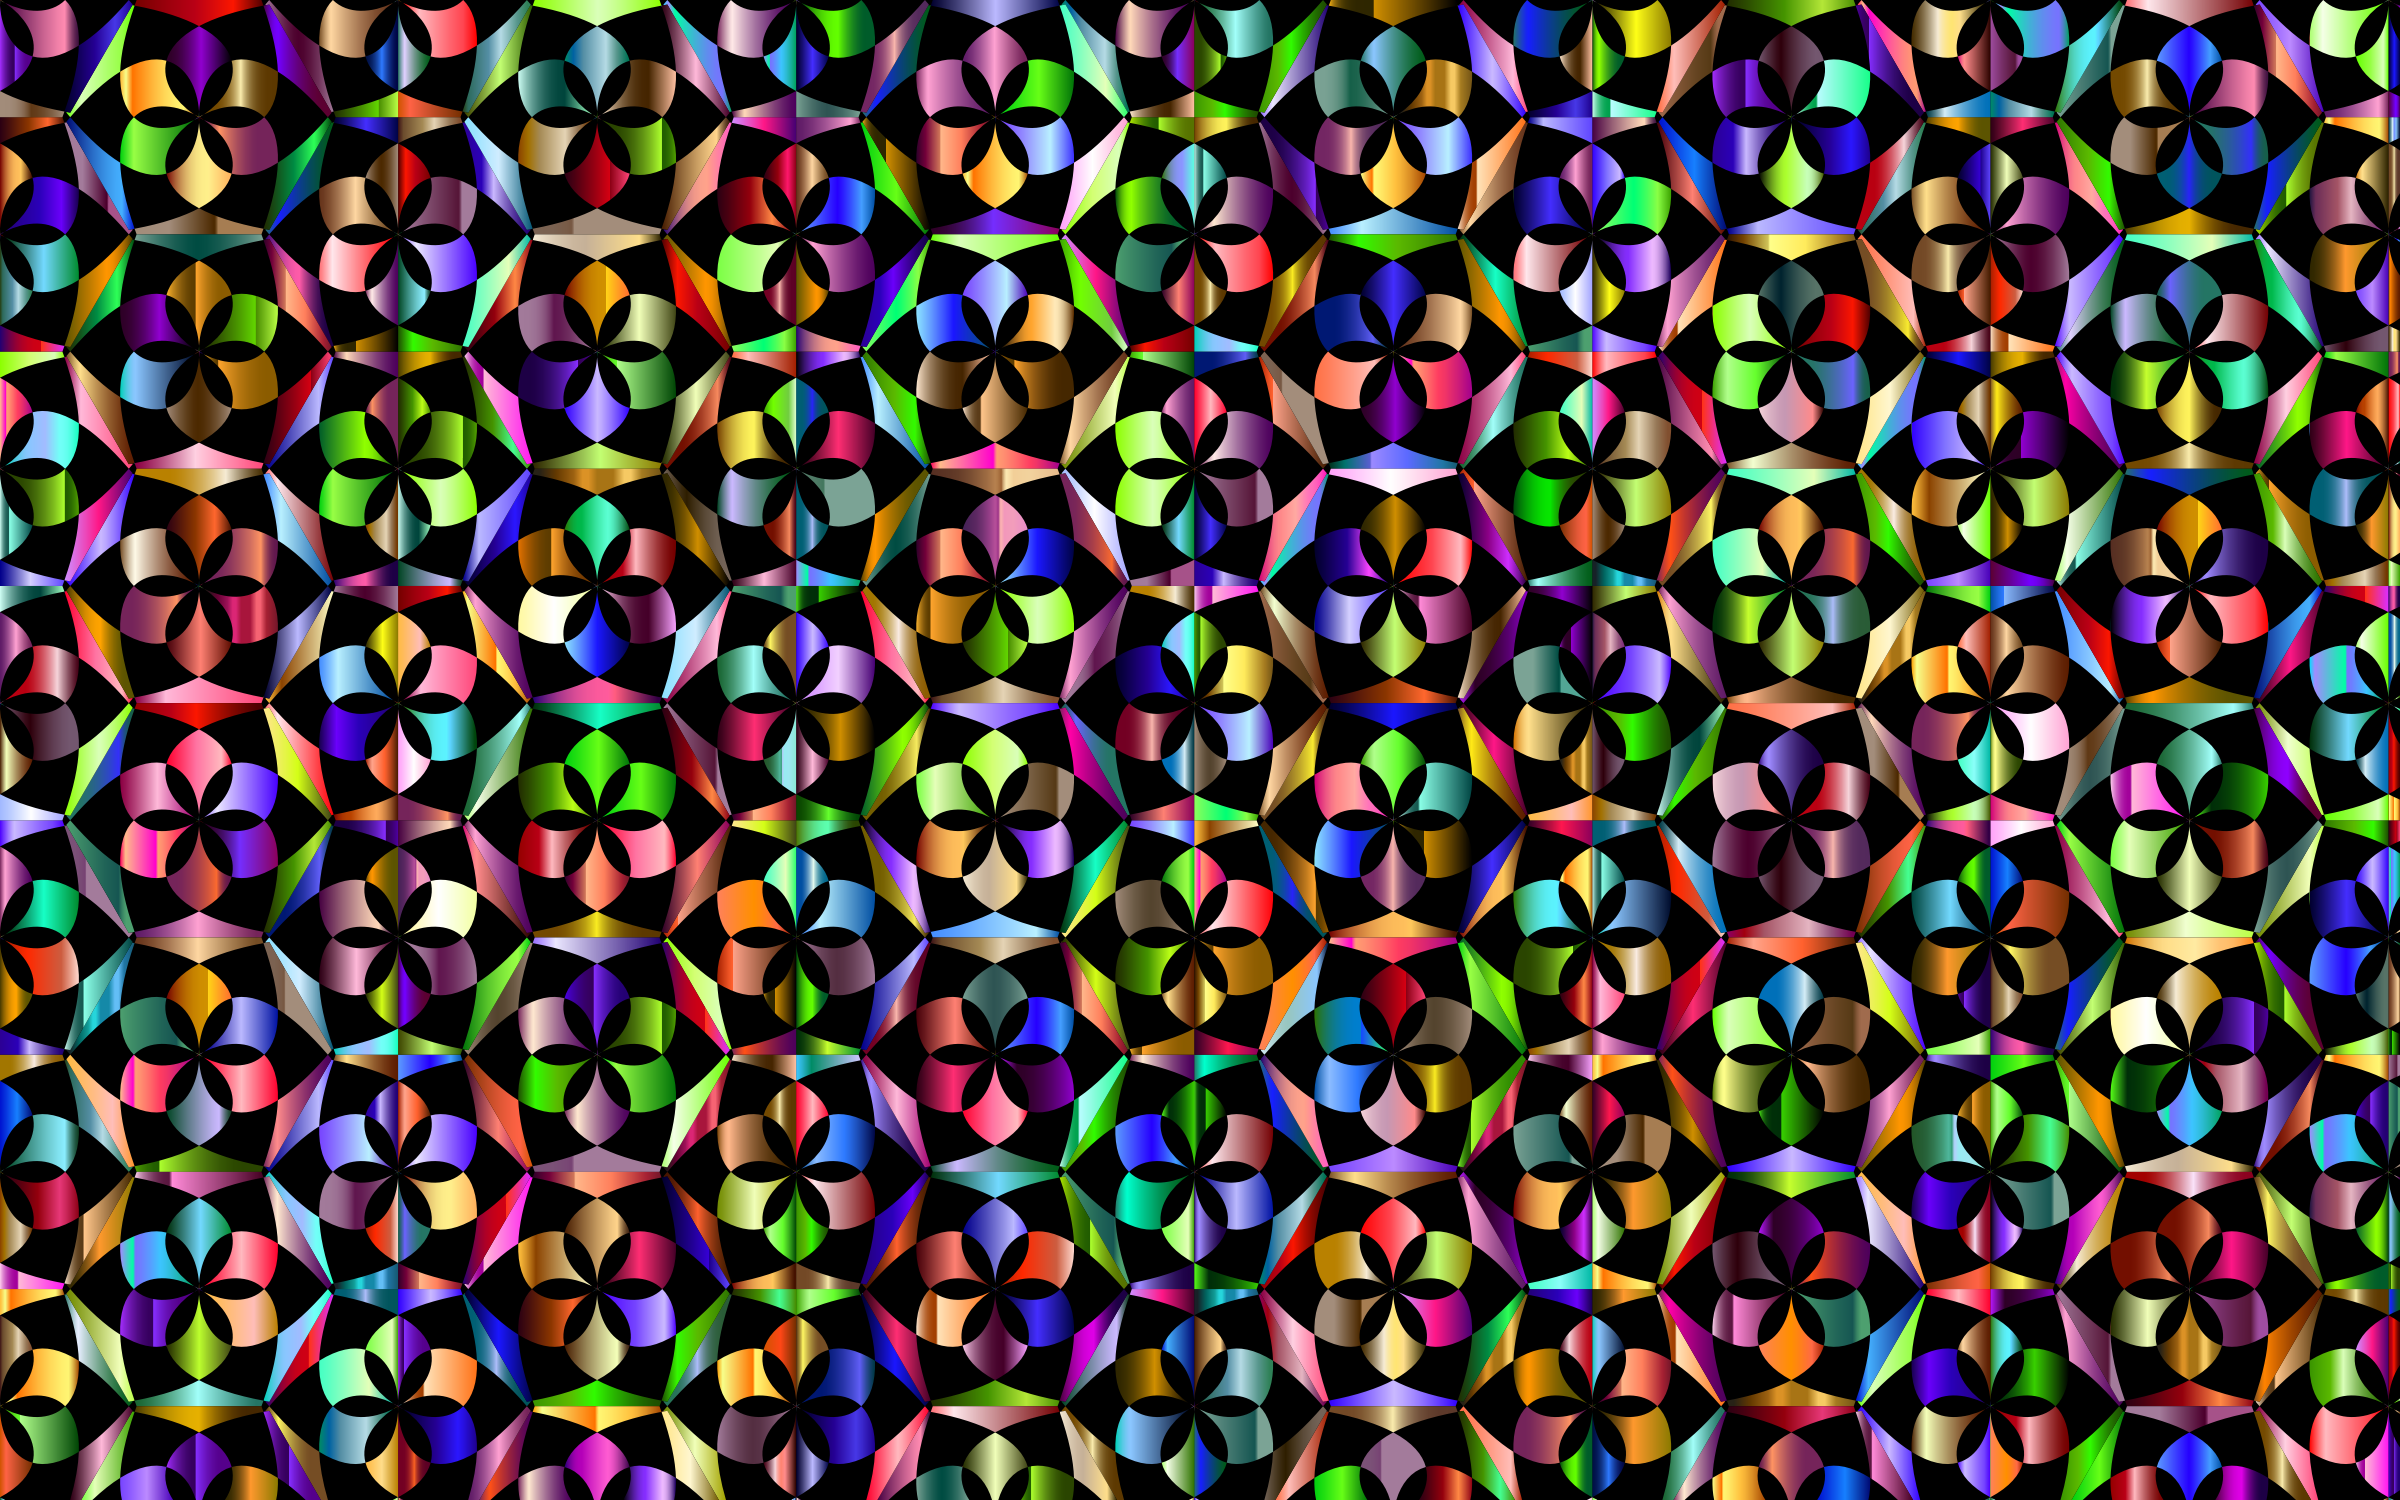 Prismatic Floral Pattern 3 Variation 3 by GDJ